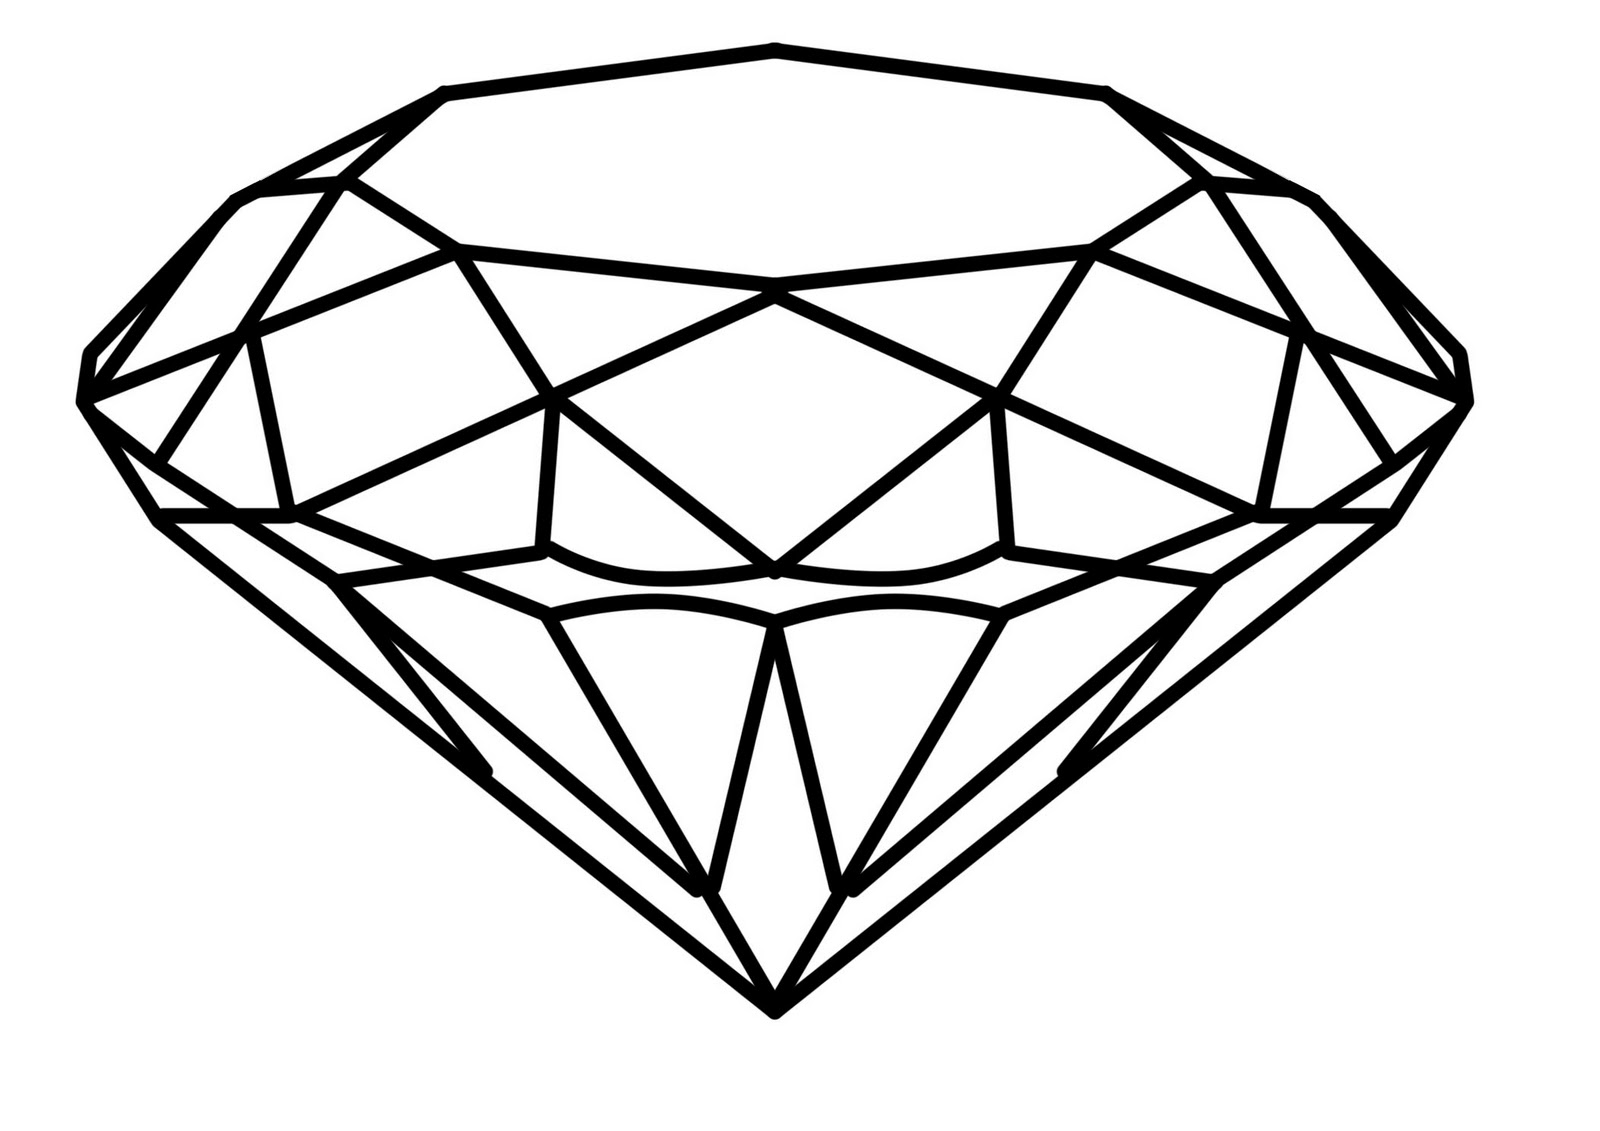 Free Diamond Outline Download Free Clip Art Free Clip